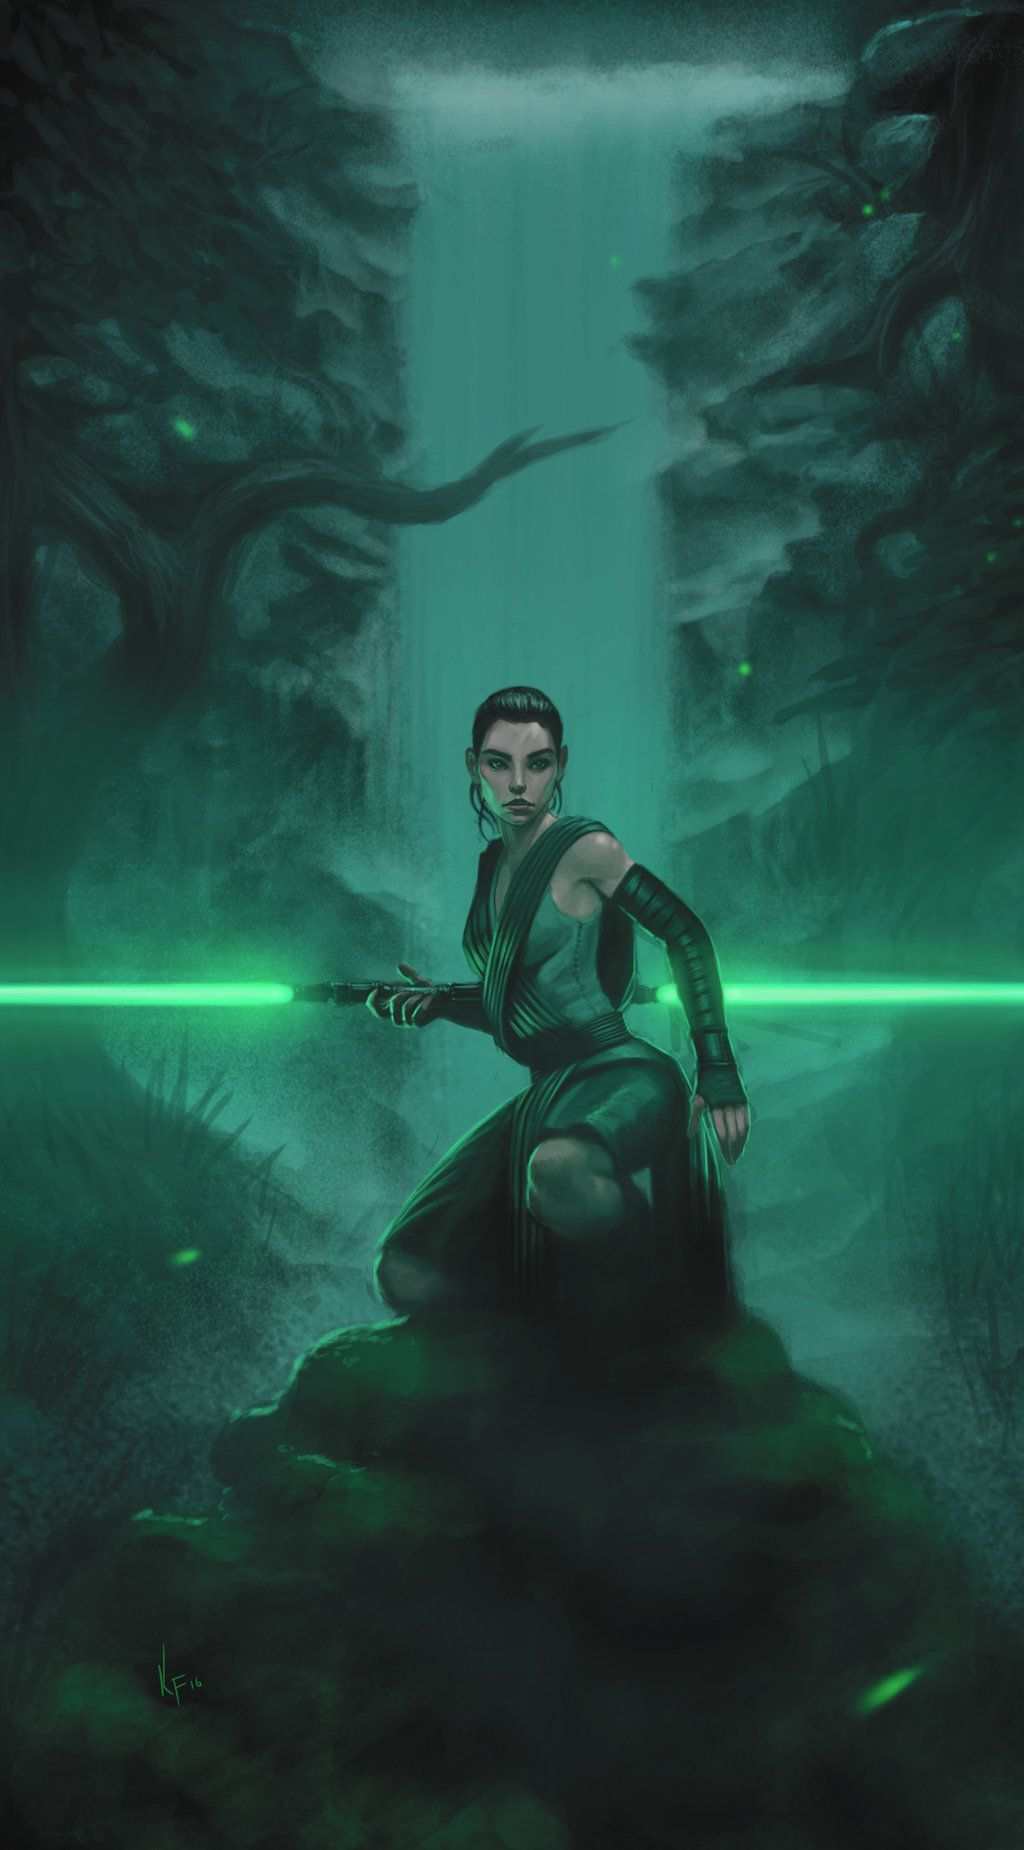 Day 91 of uploading a Star Wars image in the hopes that someone will take notice and make Knights of the Old Republic 3